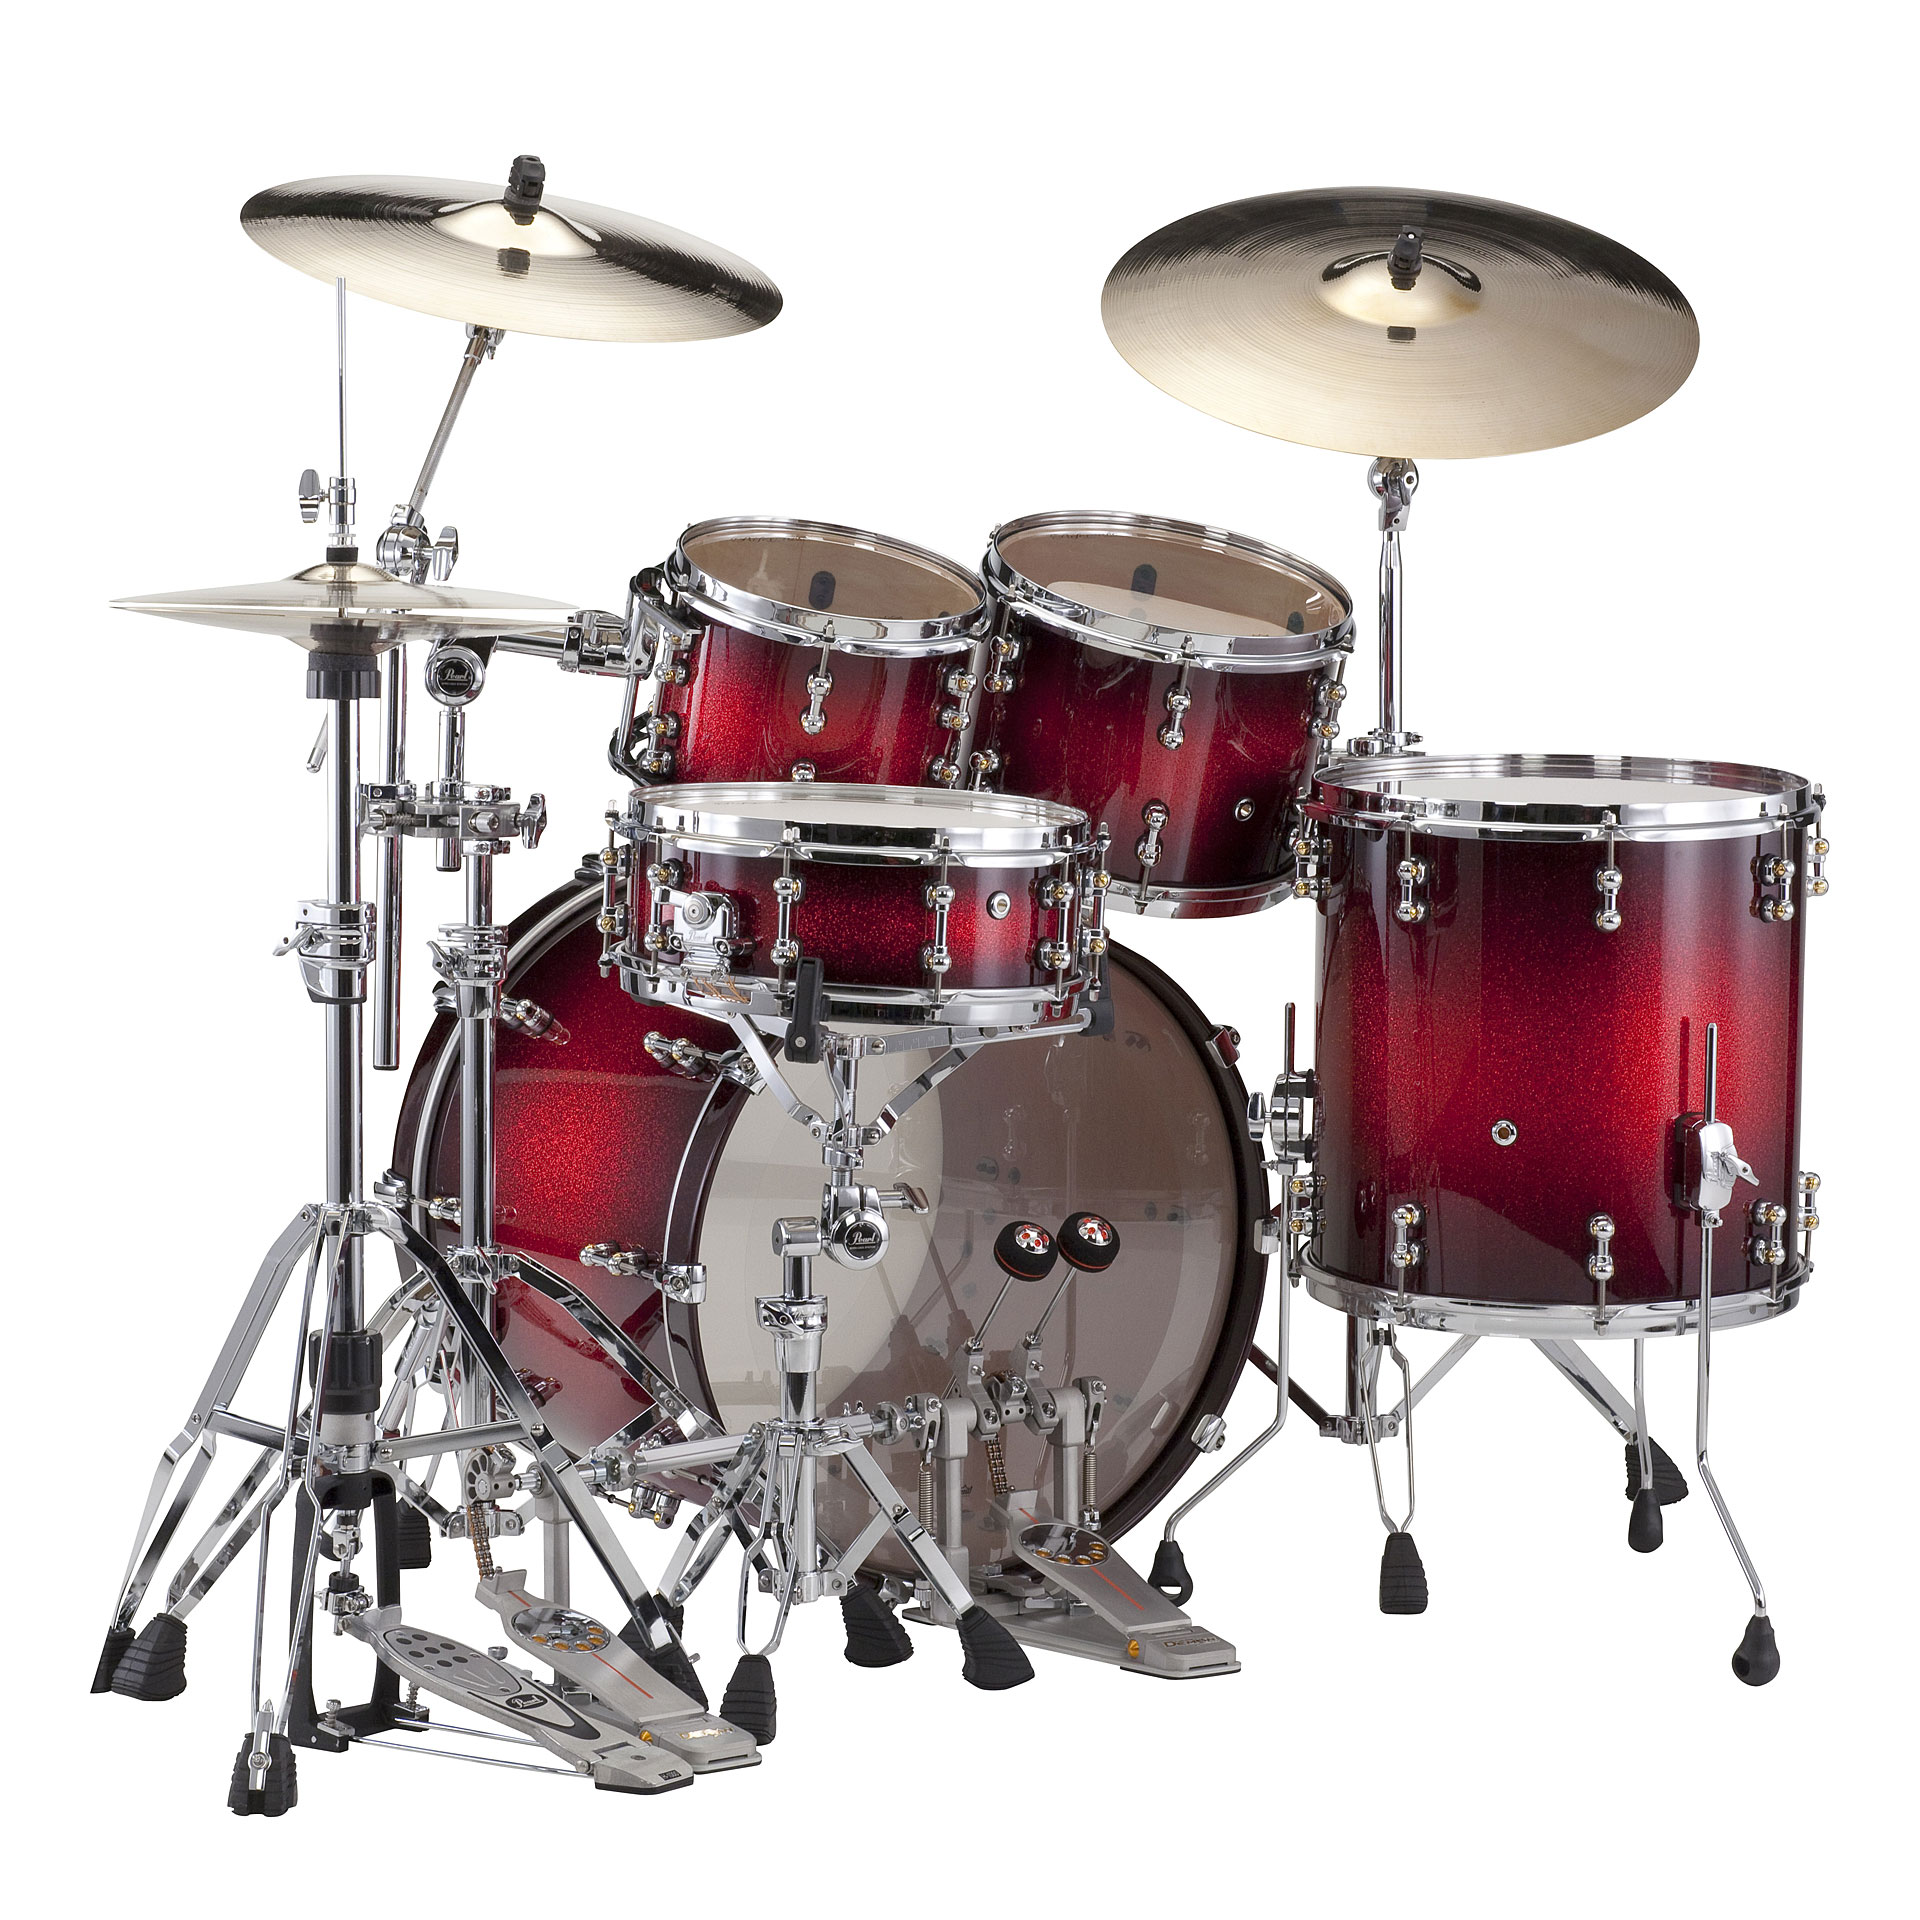 pearl reference pure rfp 924xep 377 drum kit. Black Bedroom Furniture Sets. Home Design Ideas